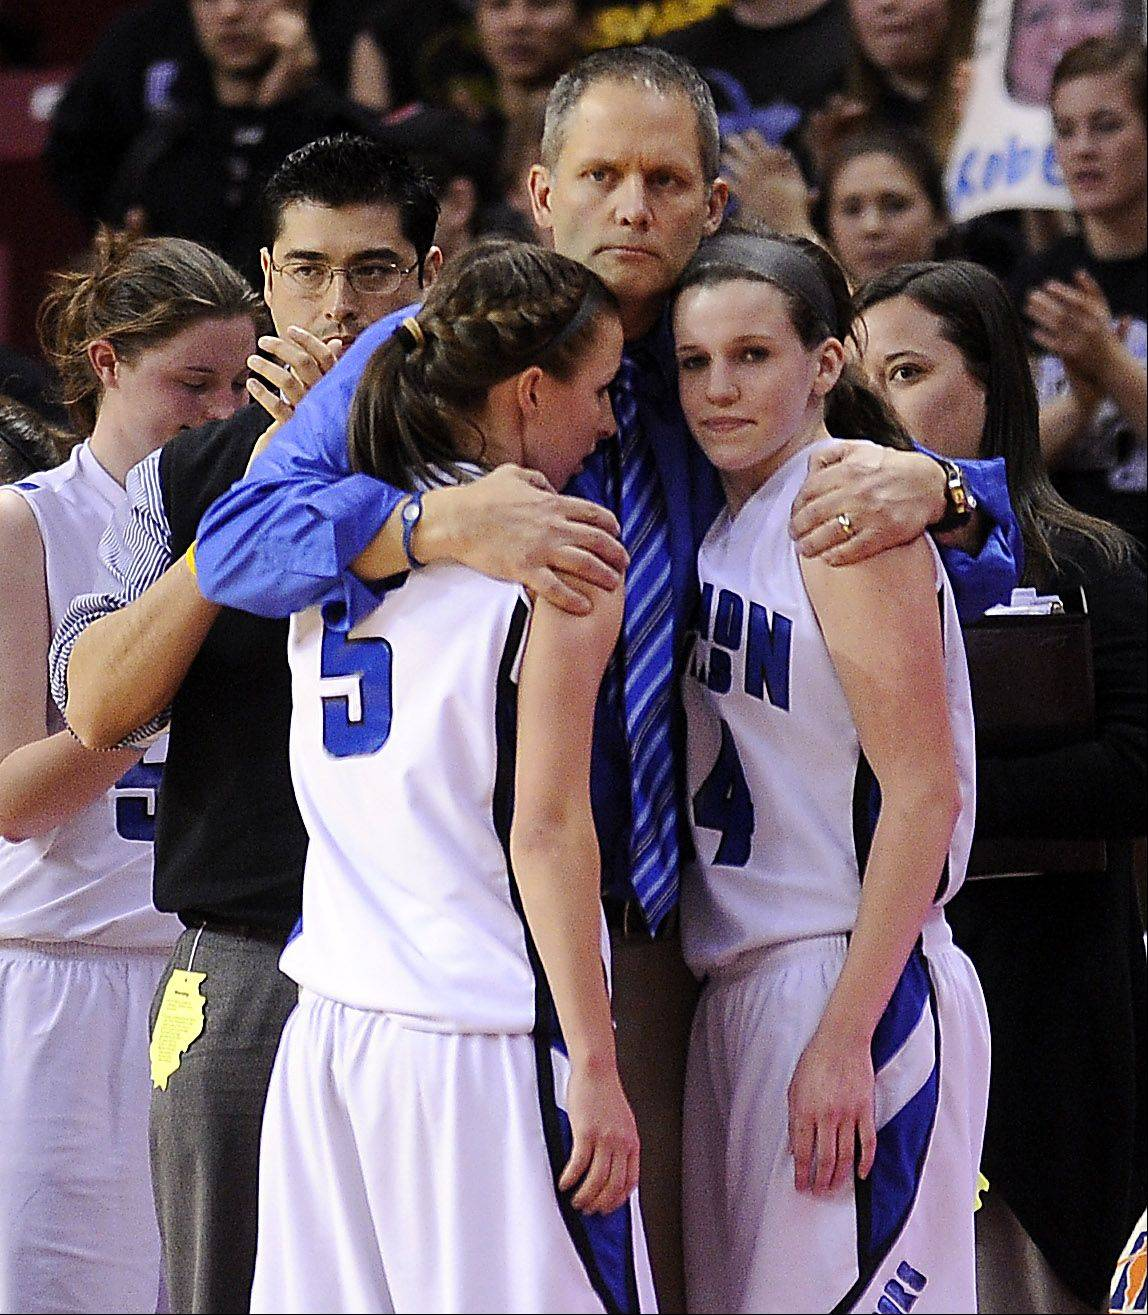 Vernon Hills' coach Paul Brettner hugs his players Julie Pecht and Abby Springer after their loss to Montini in the 2012 IHSA Class 3A Girls basketball Tournament in Normal, Illinois on Saturday.